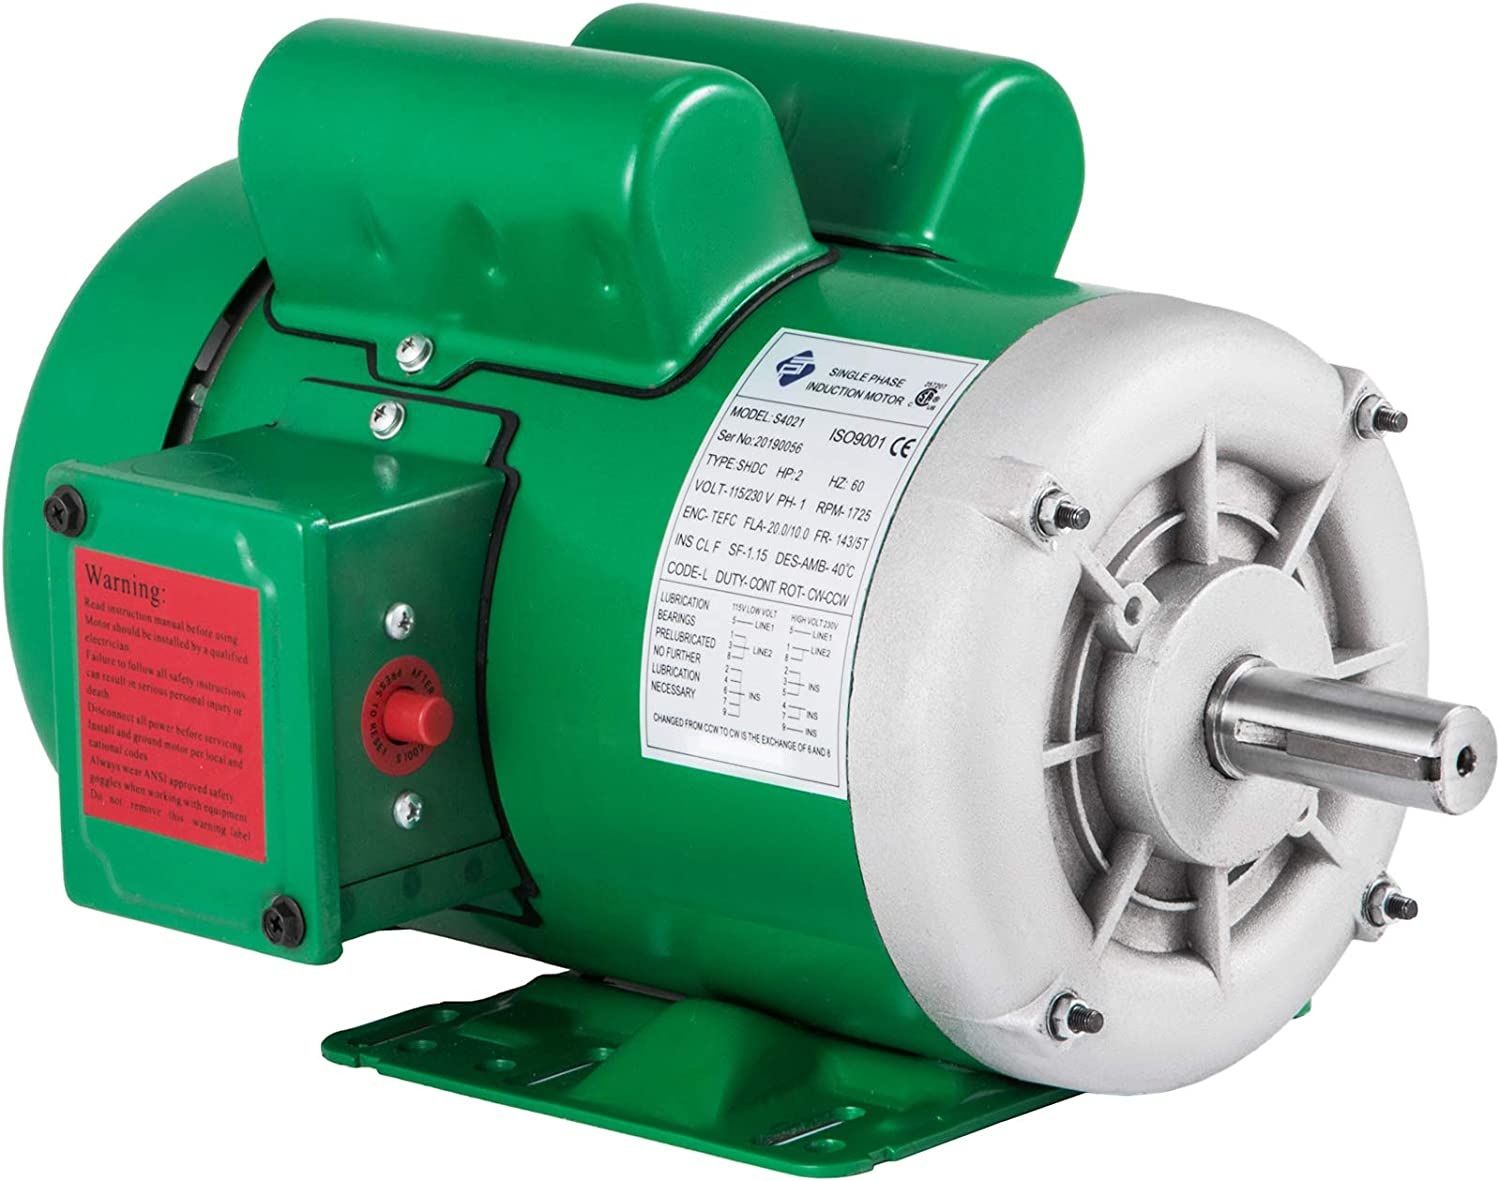 Mophorn Electric Motor 2Hp 143 5T Frame Single Phase Motor 1800 RPM 60Hz Air Compressor Motor AC 115V 230V Suit for Agricultural Machinery and General Equipment